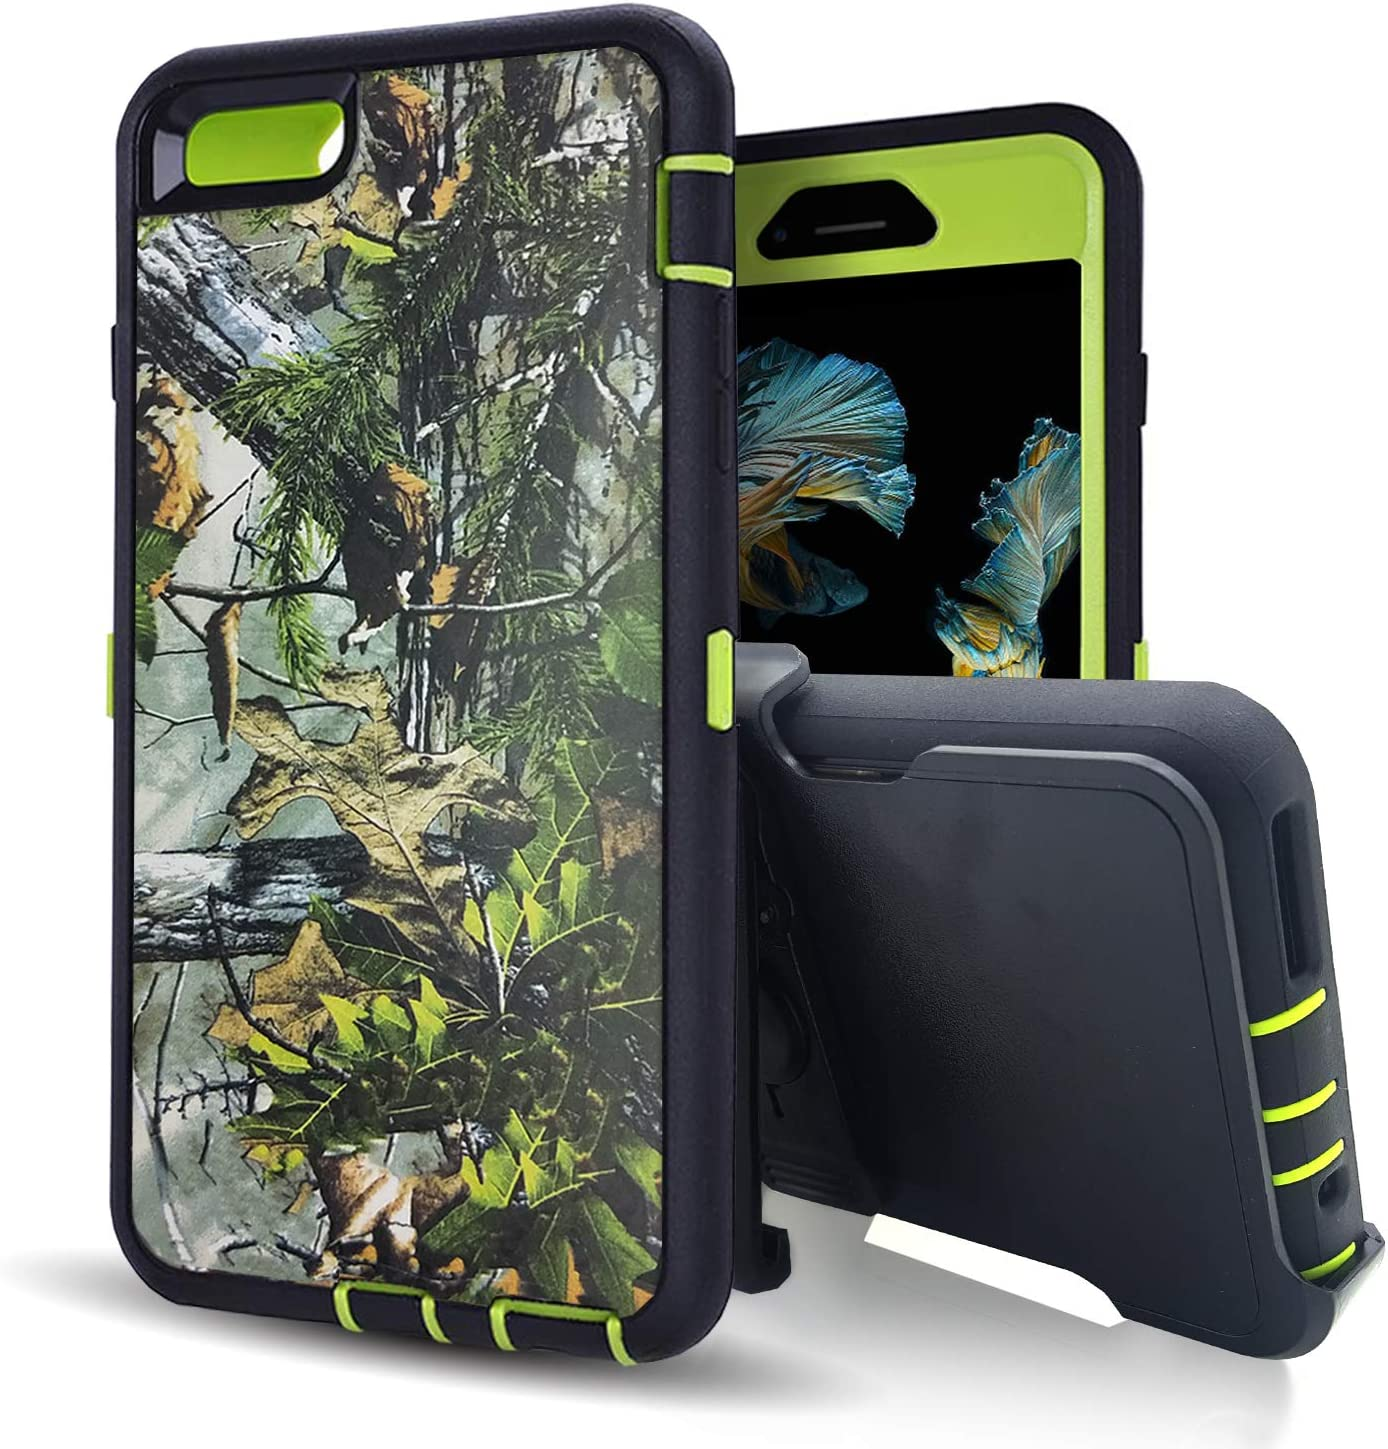 iPhone 6s Phone Case with Screen Protector,iPhone 6 Case with Belt Clip,Vodico Heavy Duty Defender Camo Silicone Protective Cover+Hard Bumper Shockproof Stand Holster Cases for Men/Women (F Green)